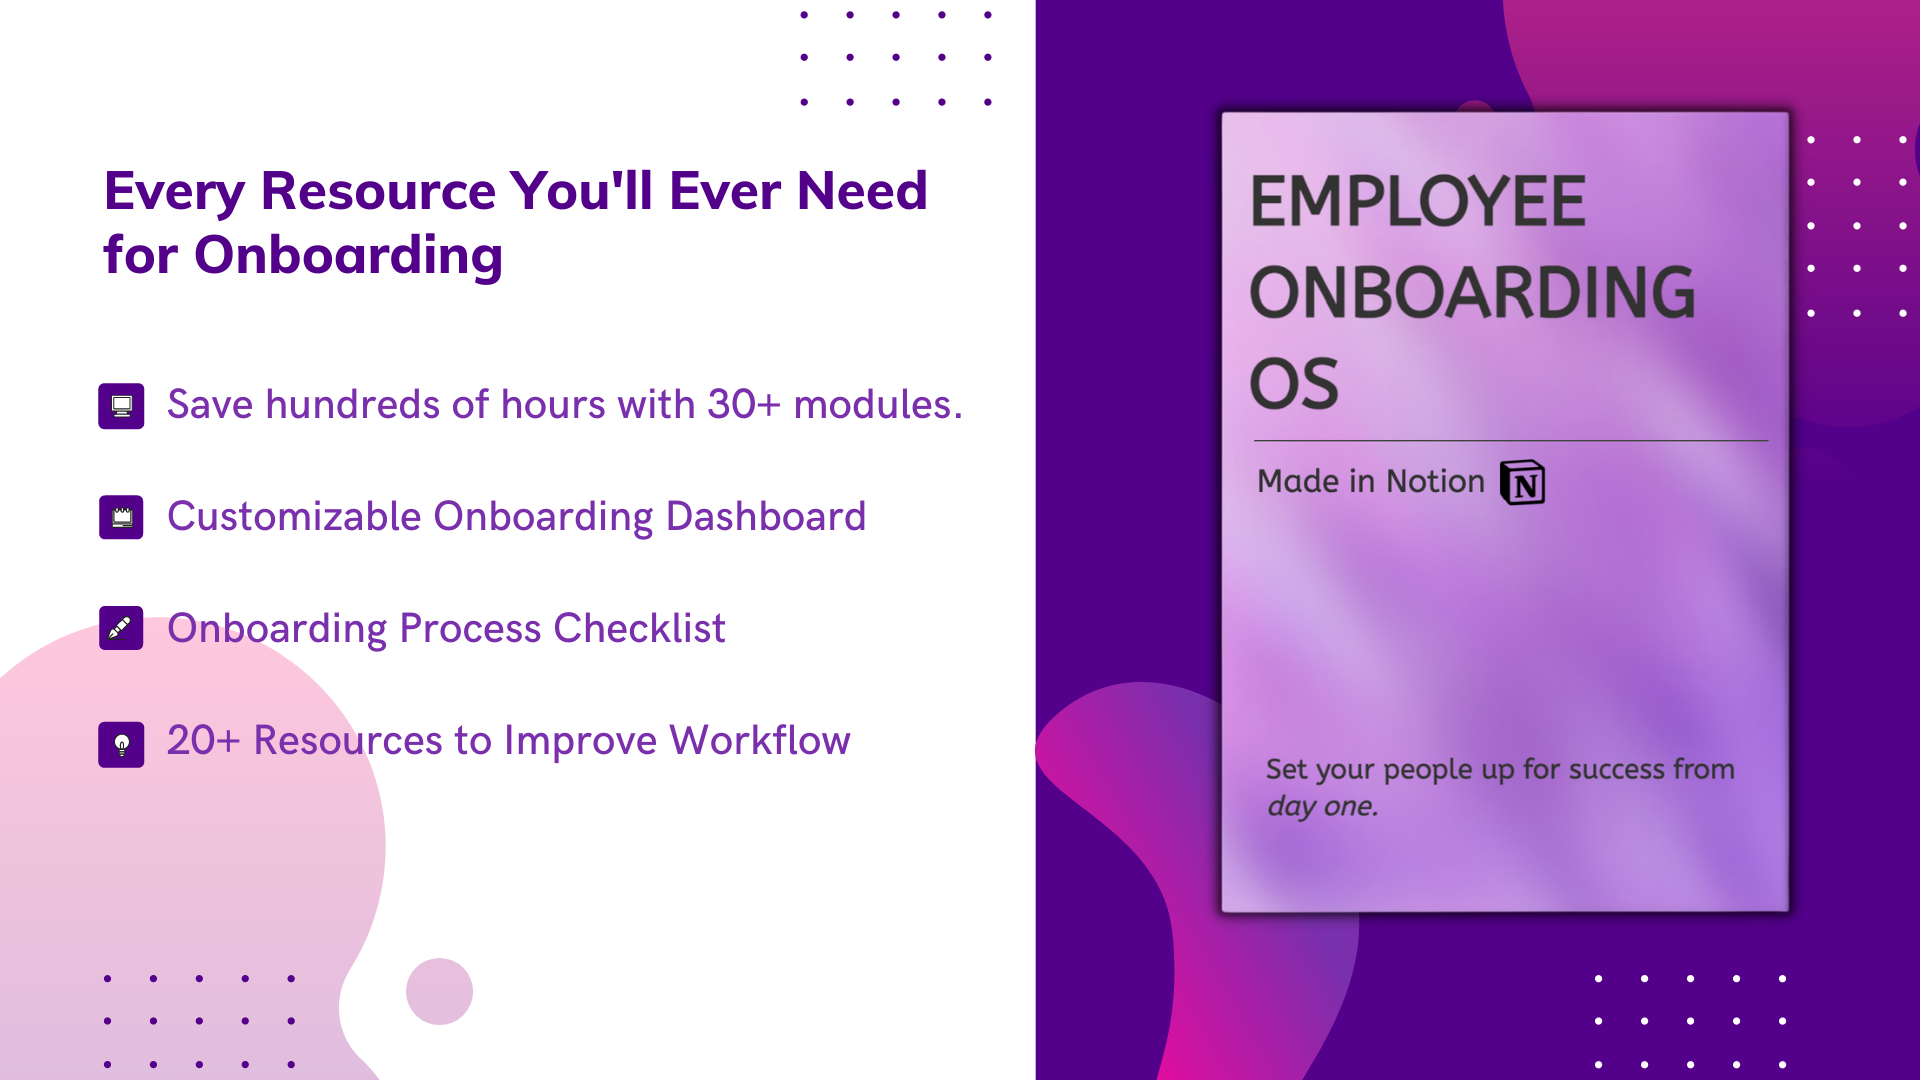 Onboarding OS